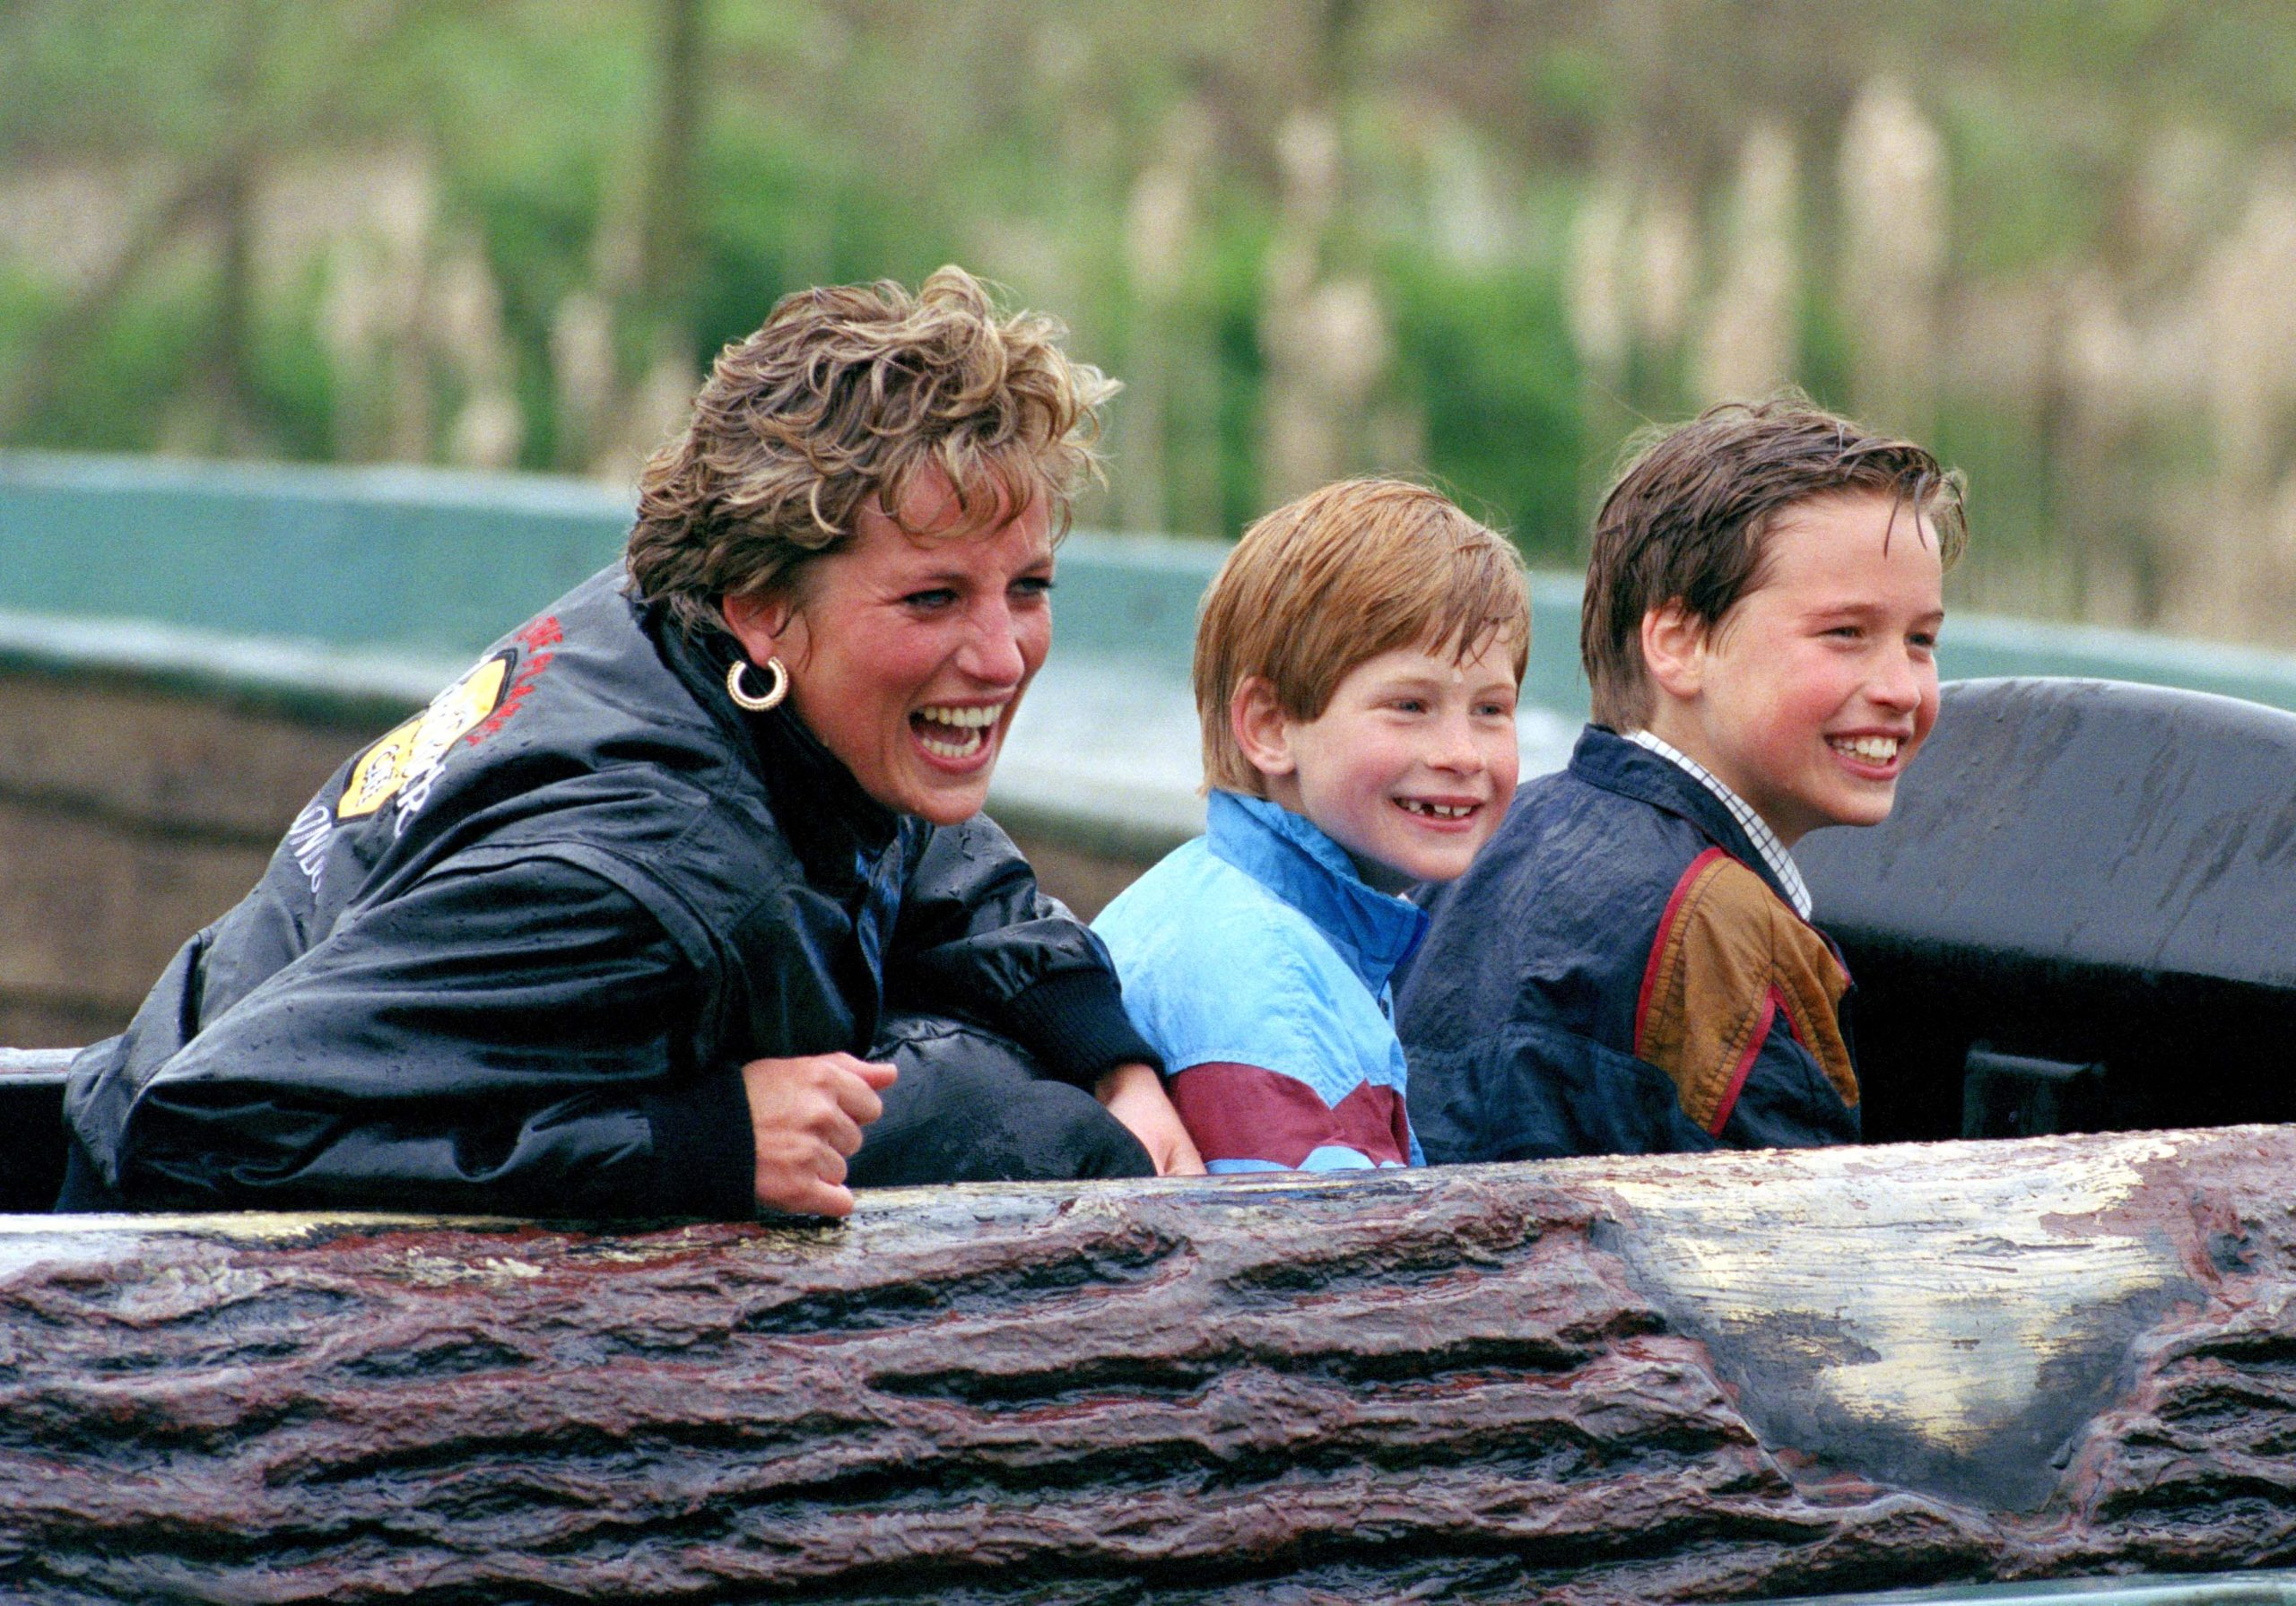 Diana, William, and Harry